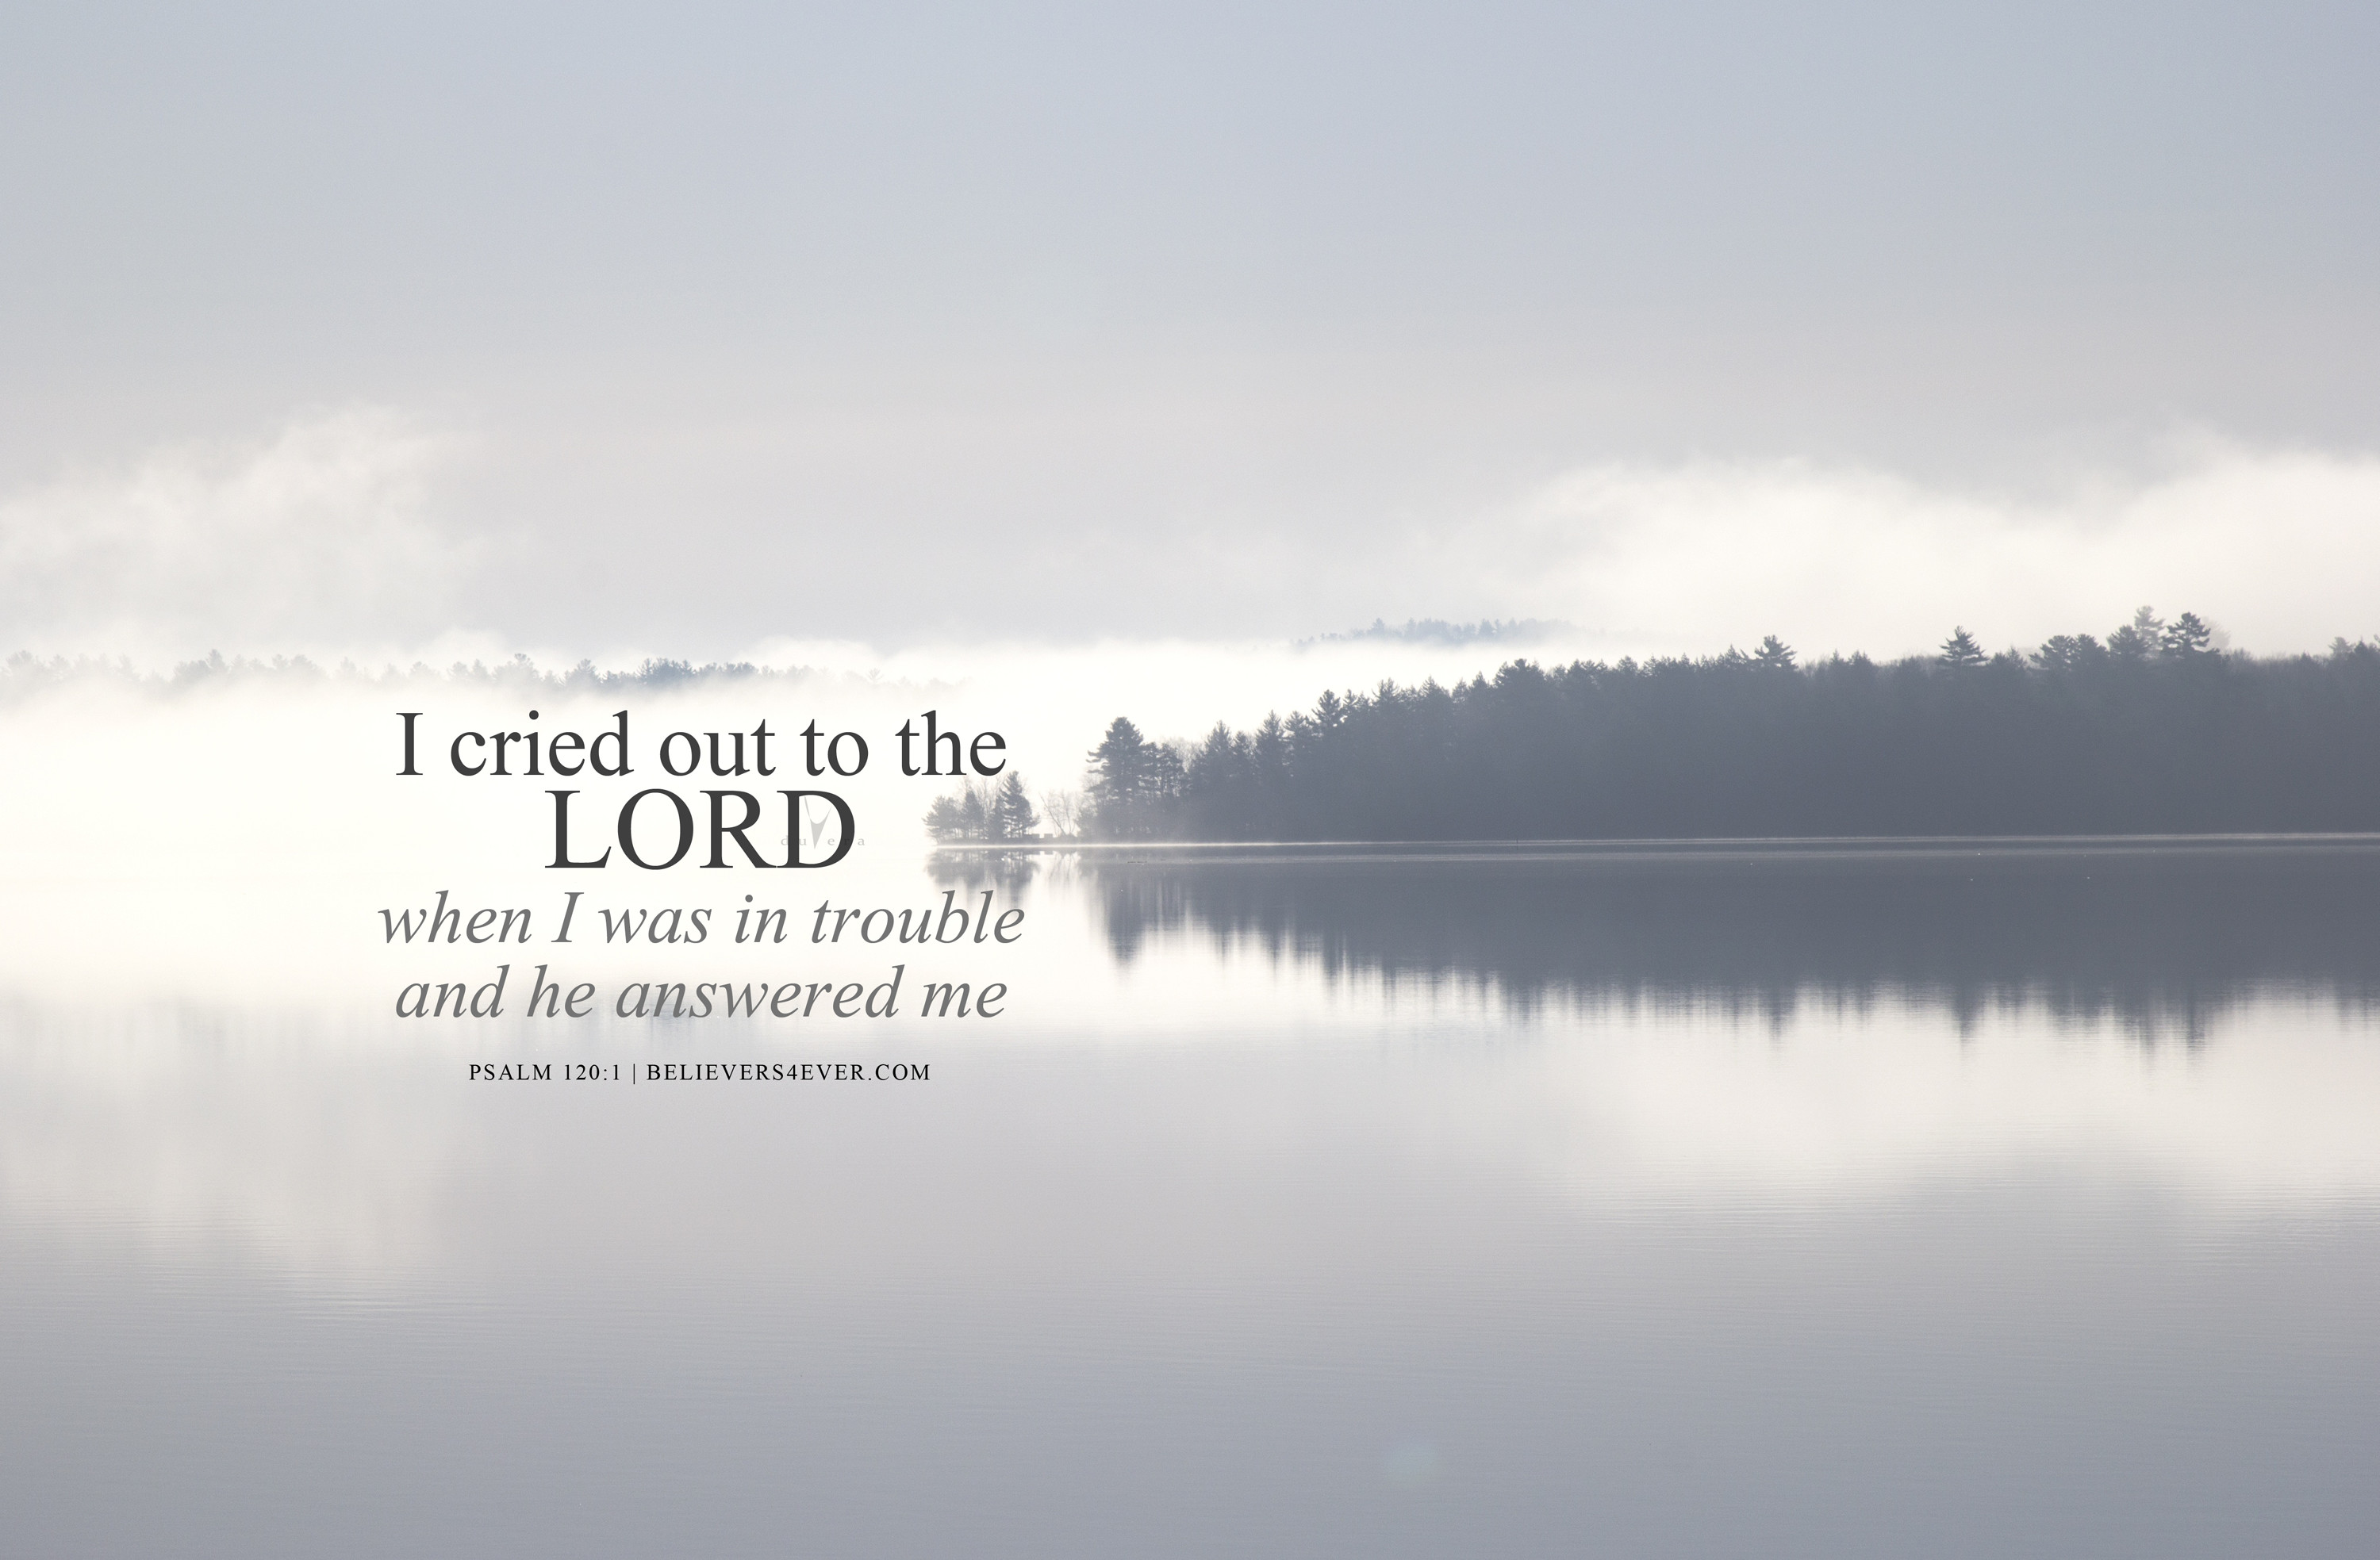 3000x1967 Christian desktop wallpaper with bible verse. Use for church sermons and  more. I cried